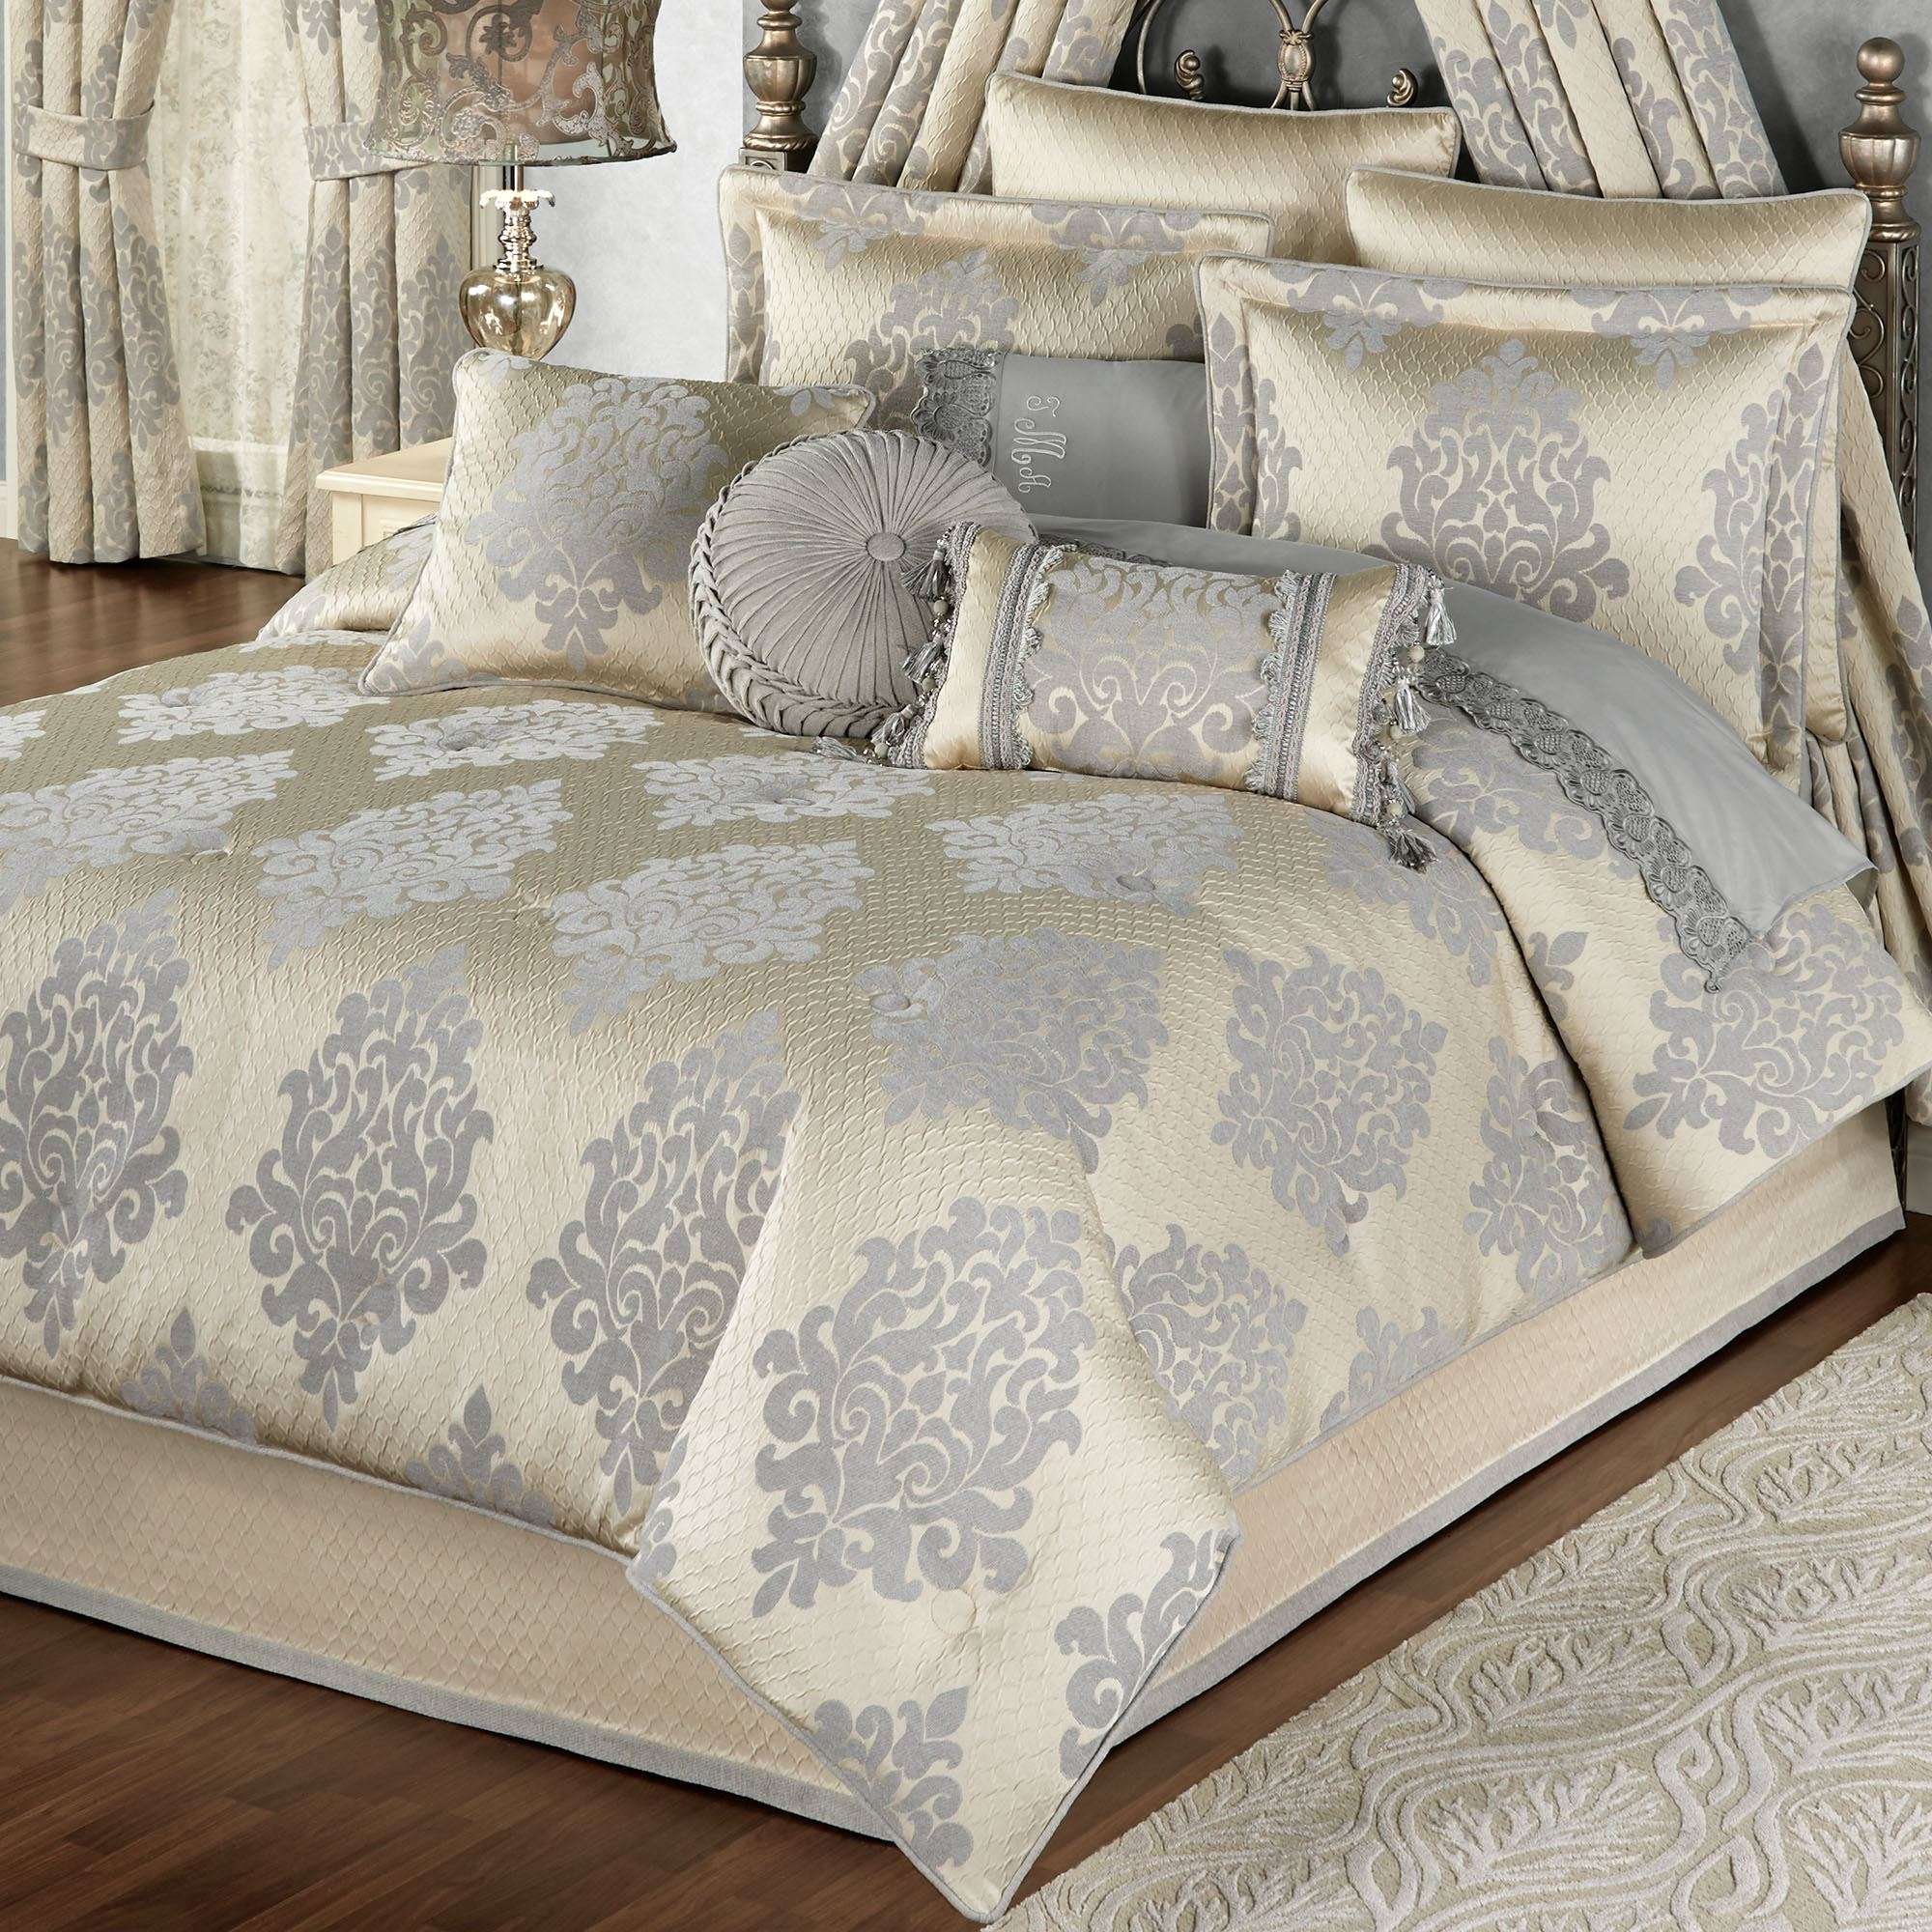 p ruched queen comforter fontana set bedding ivory oversized sets